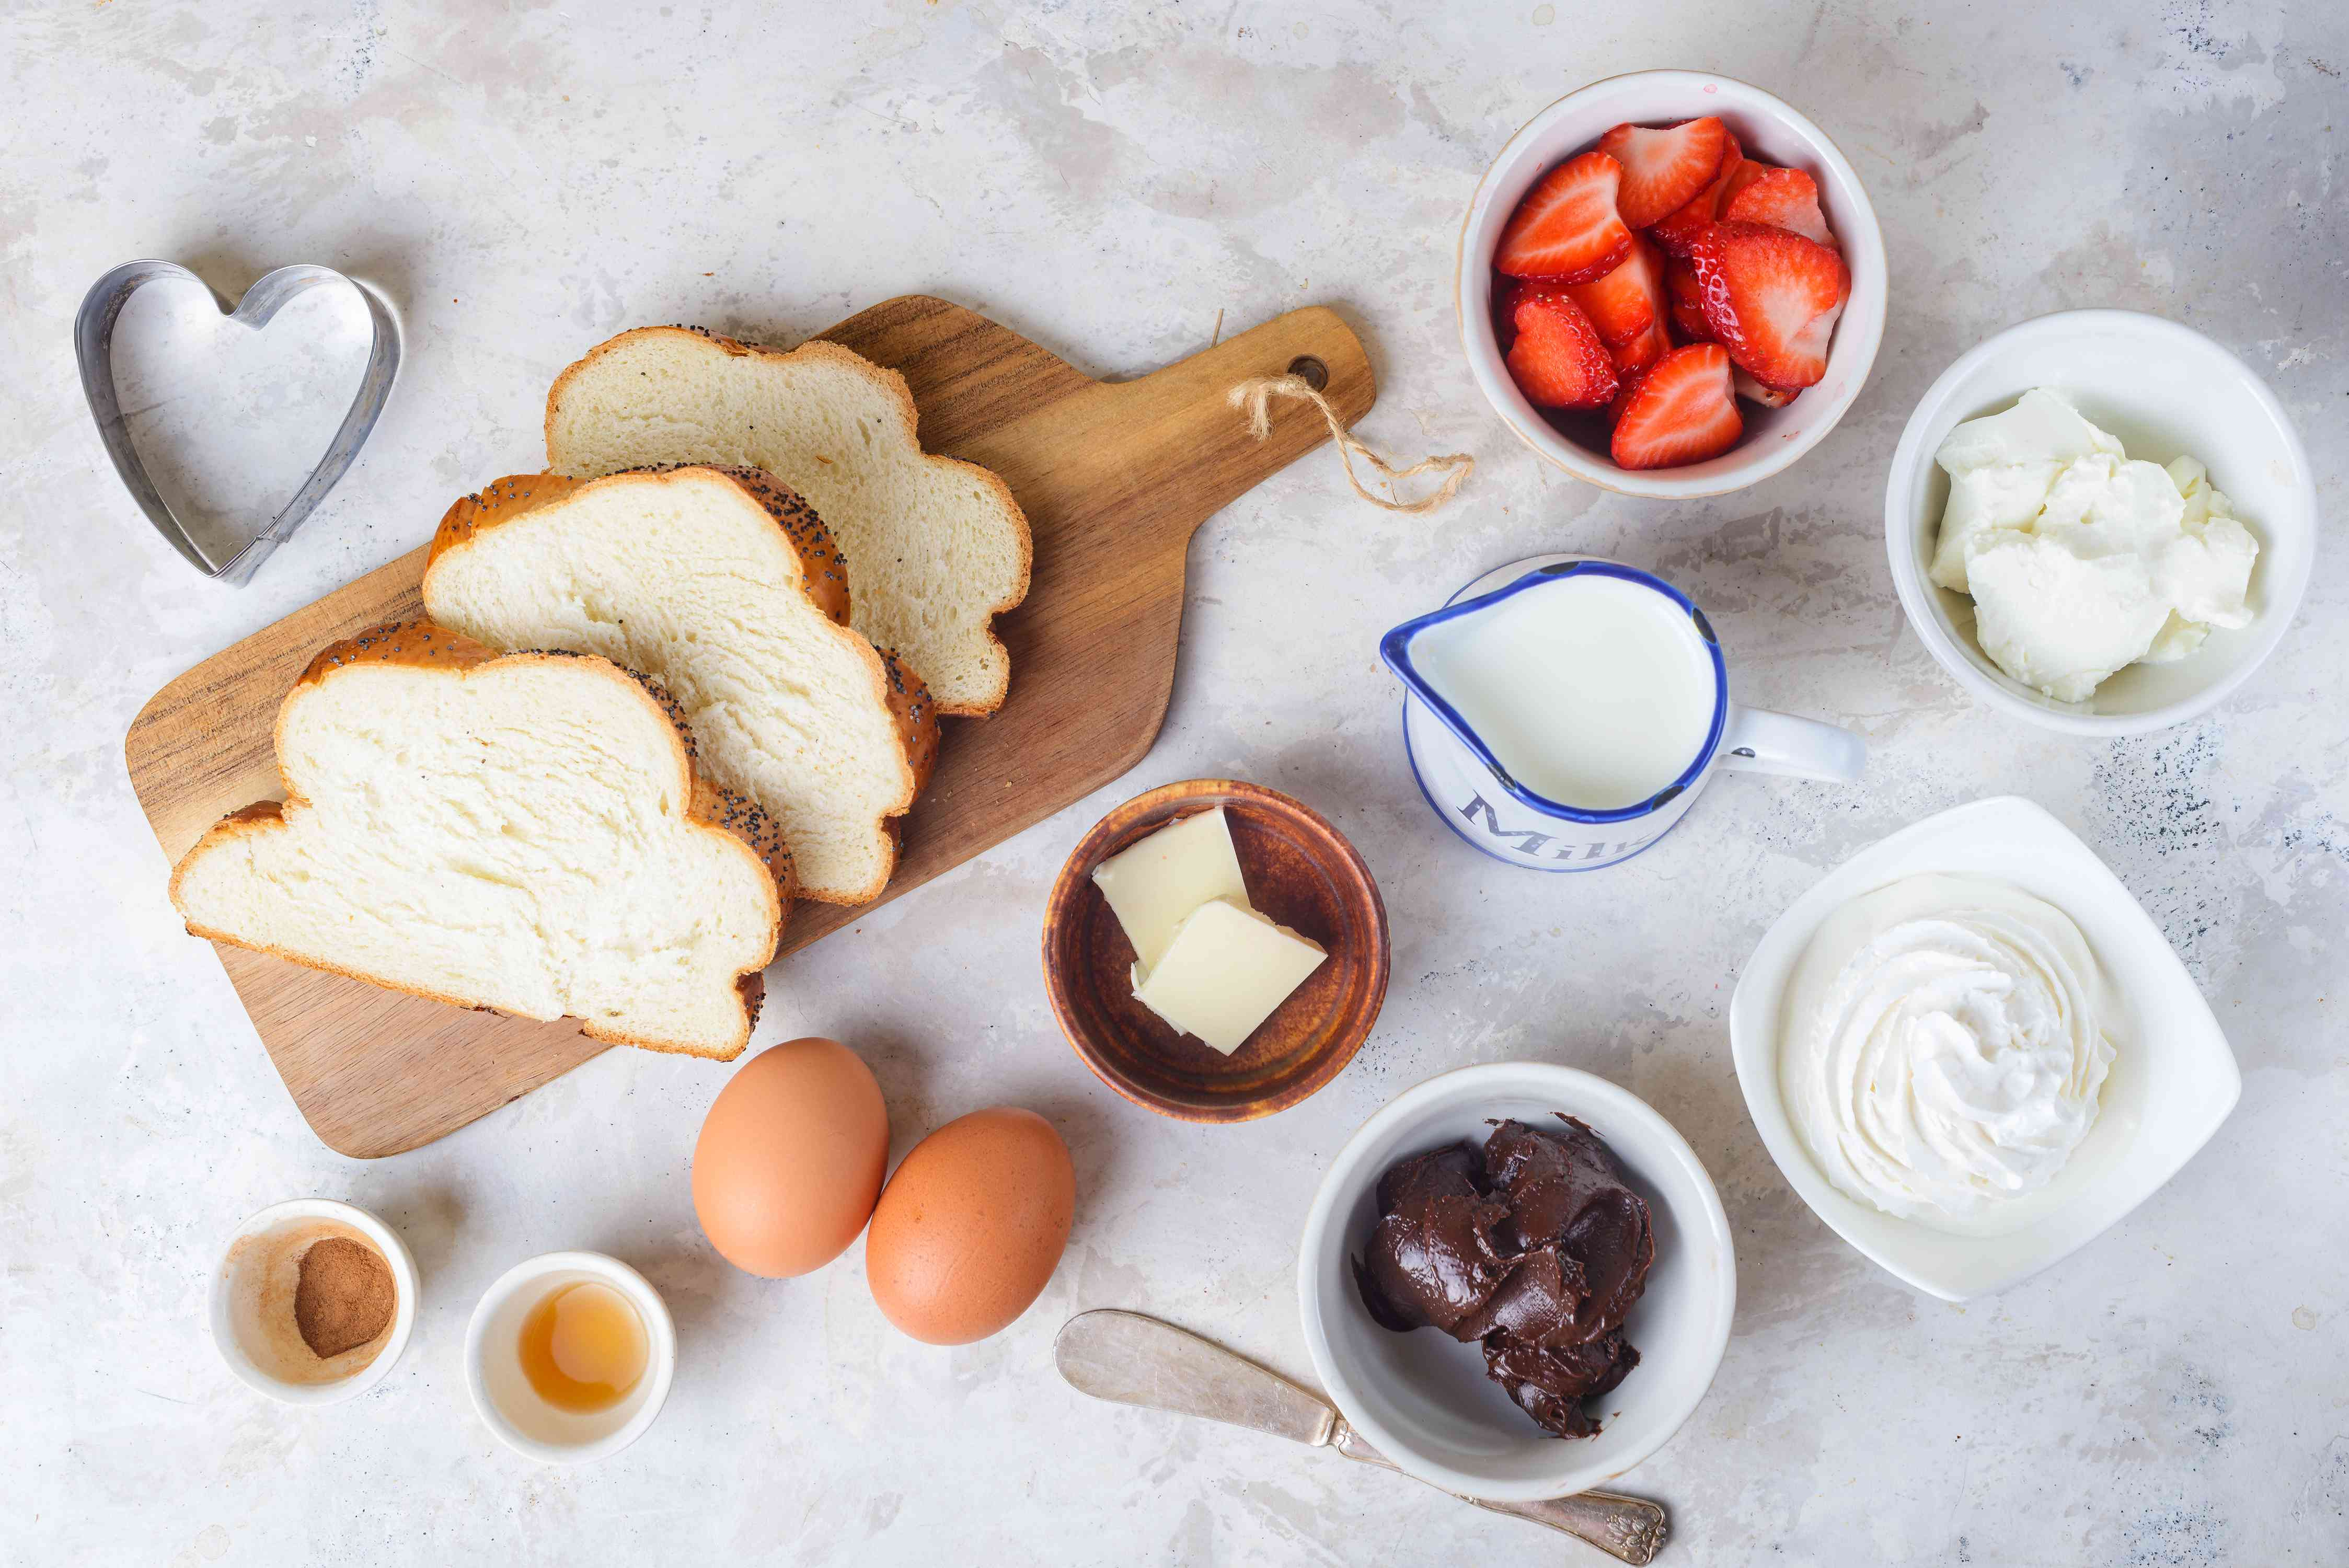 Ingredients for nutella strawberry grilled cheese